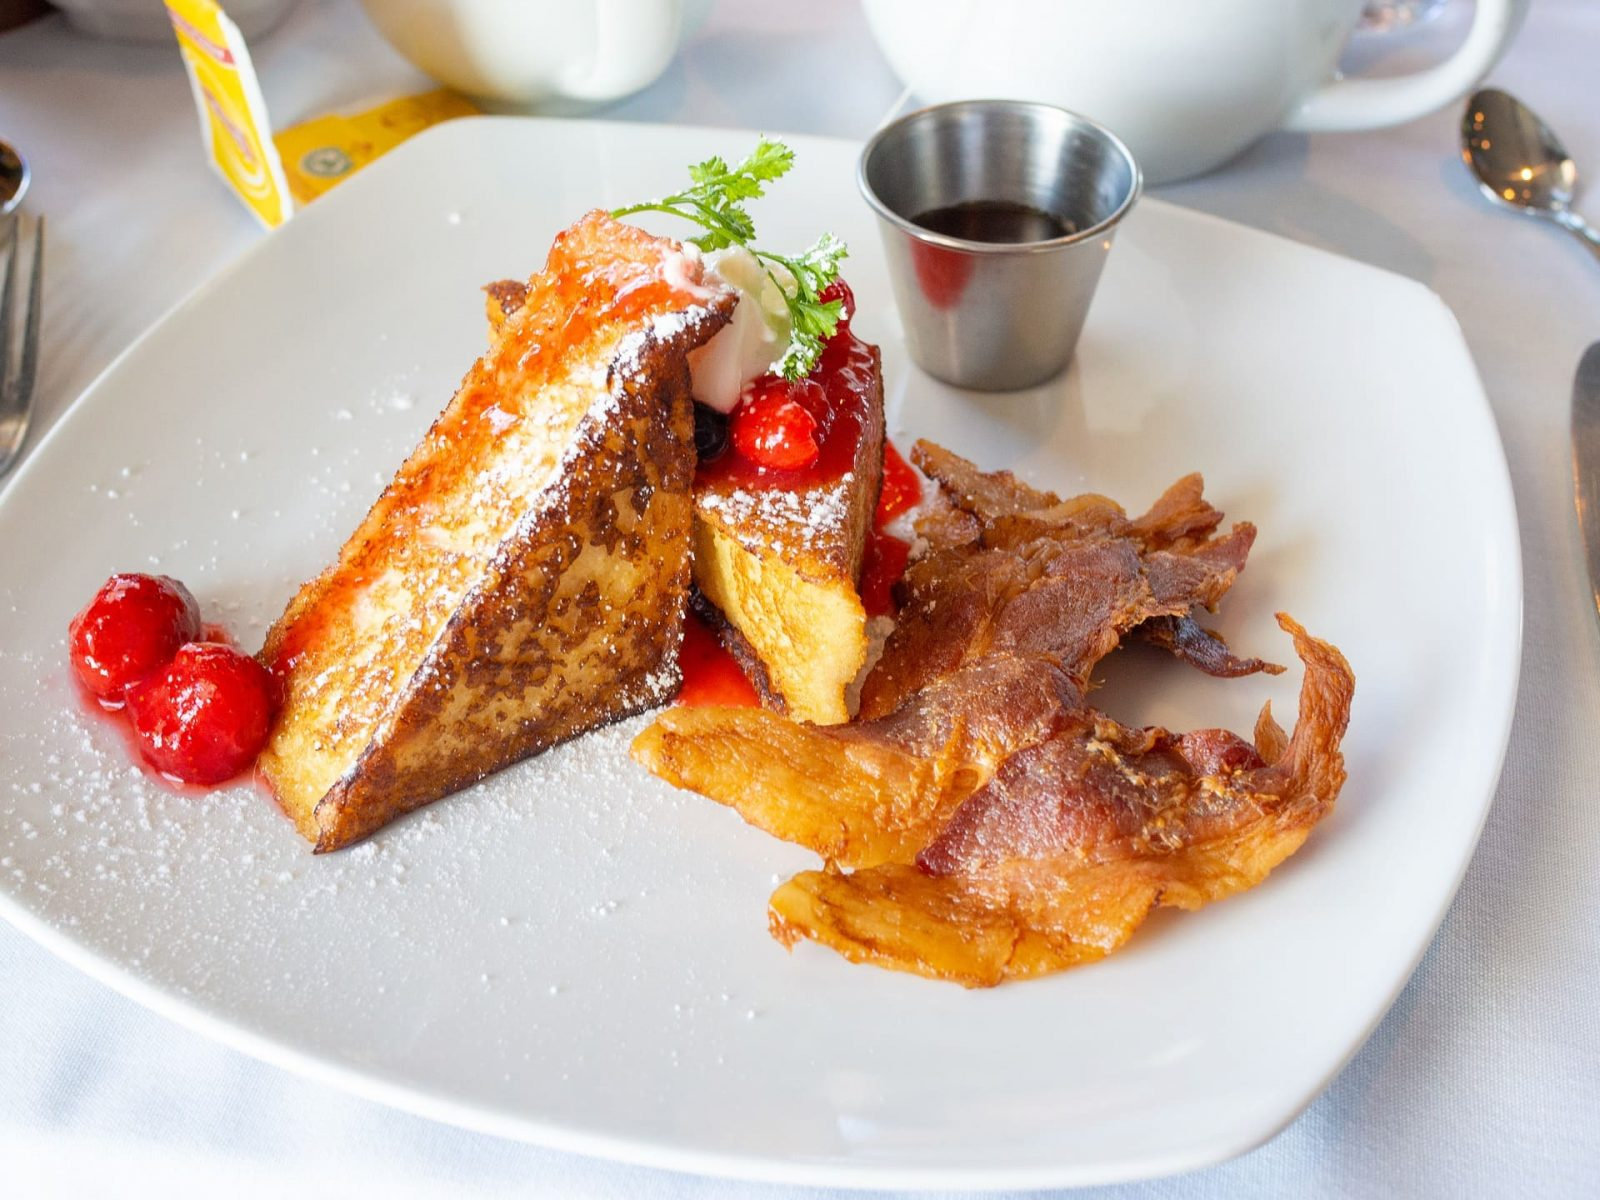 Fabulous French Toast with Spiced Fruit and Powdered Sugar